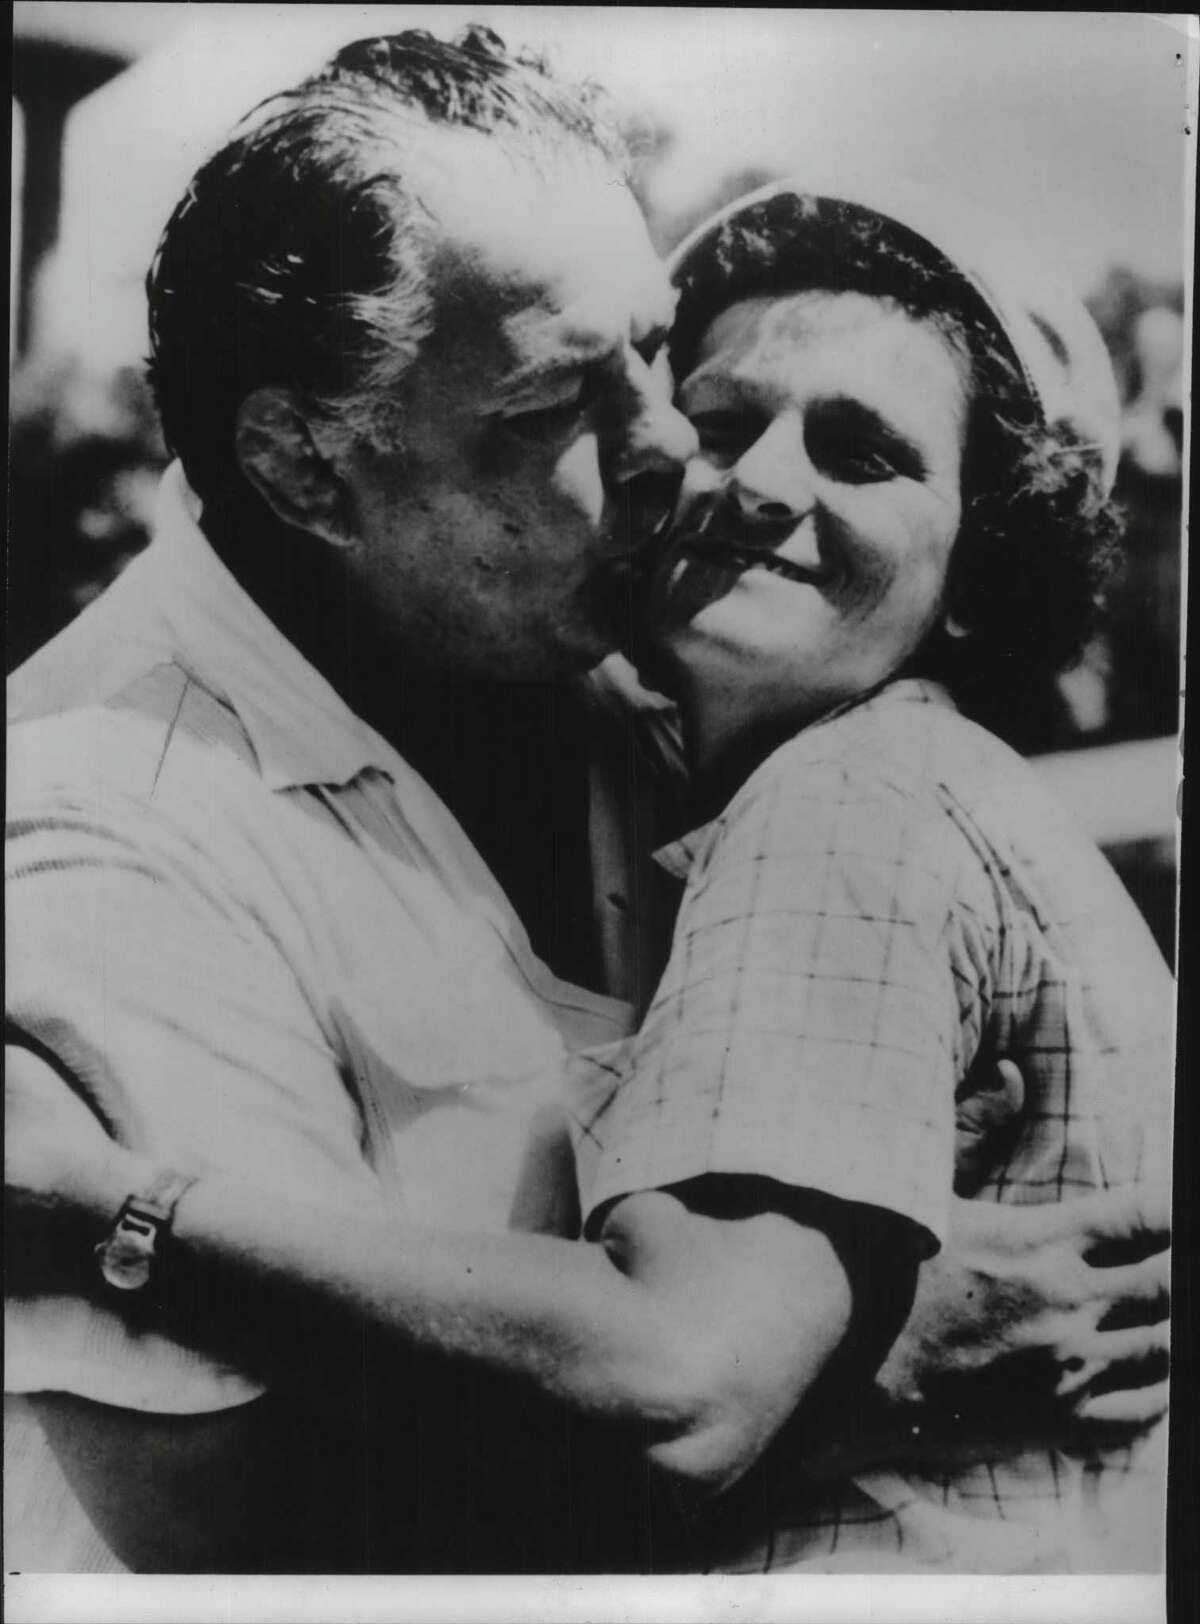 Multi-sport athlete Babe Didrikson Zaharias gets kiss. October 23, 1978 (Times Union Archive)